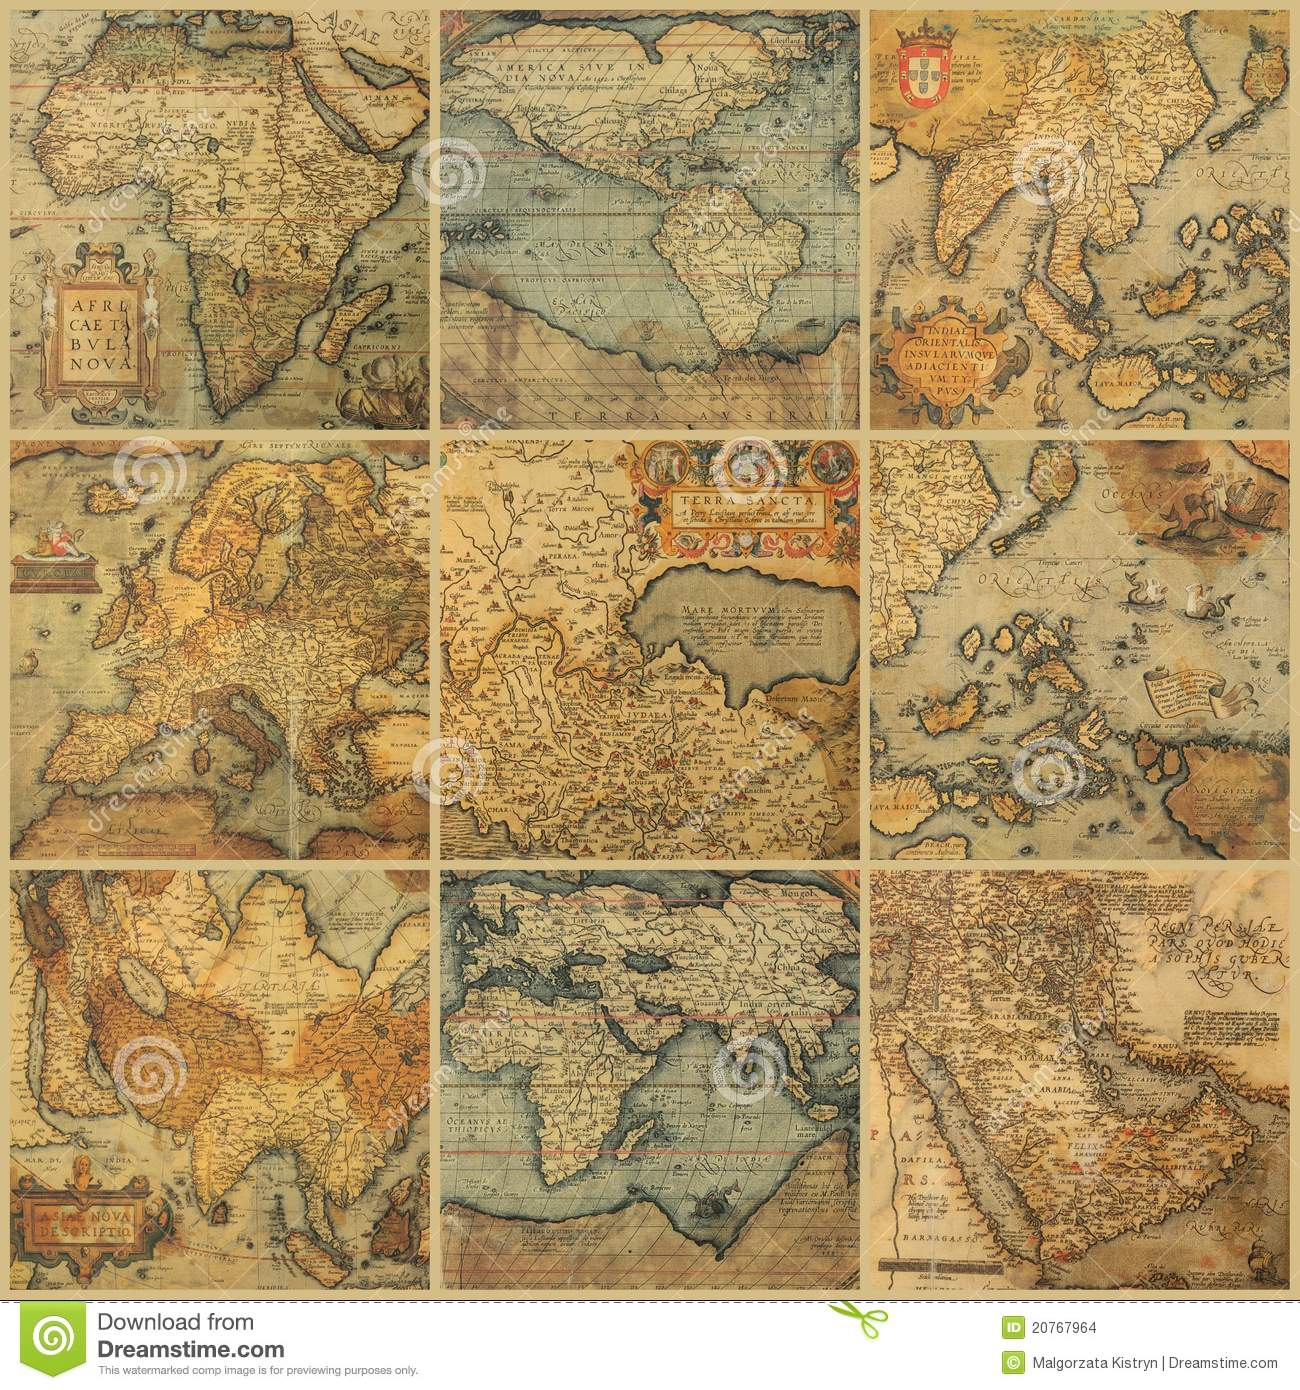 Collage with antique maps of different parts of thr world.